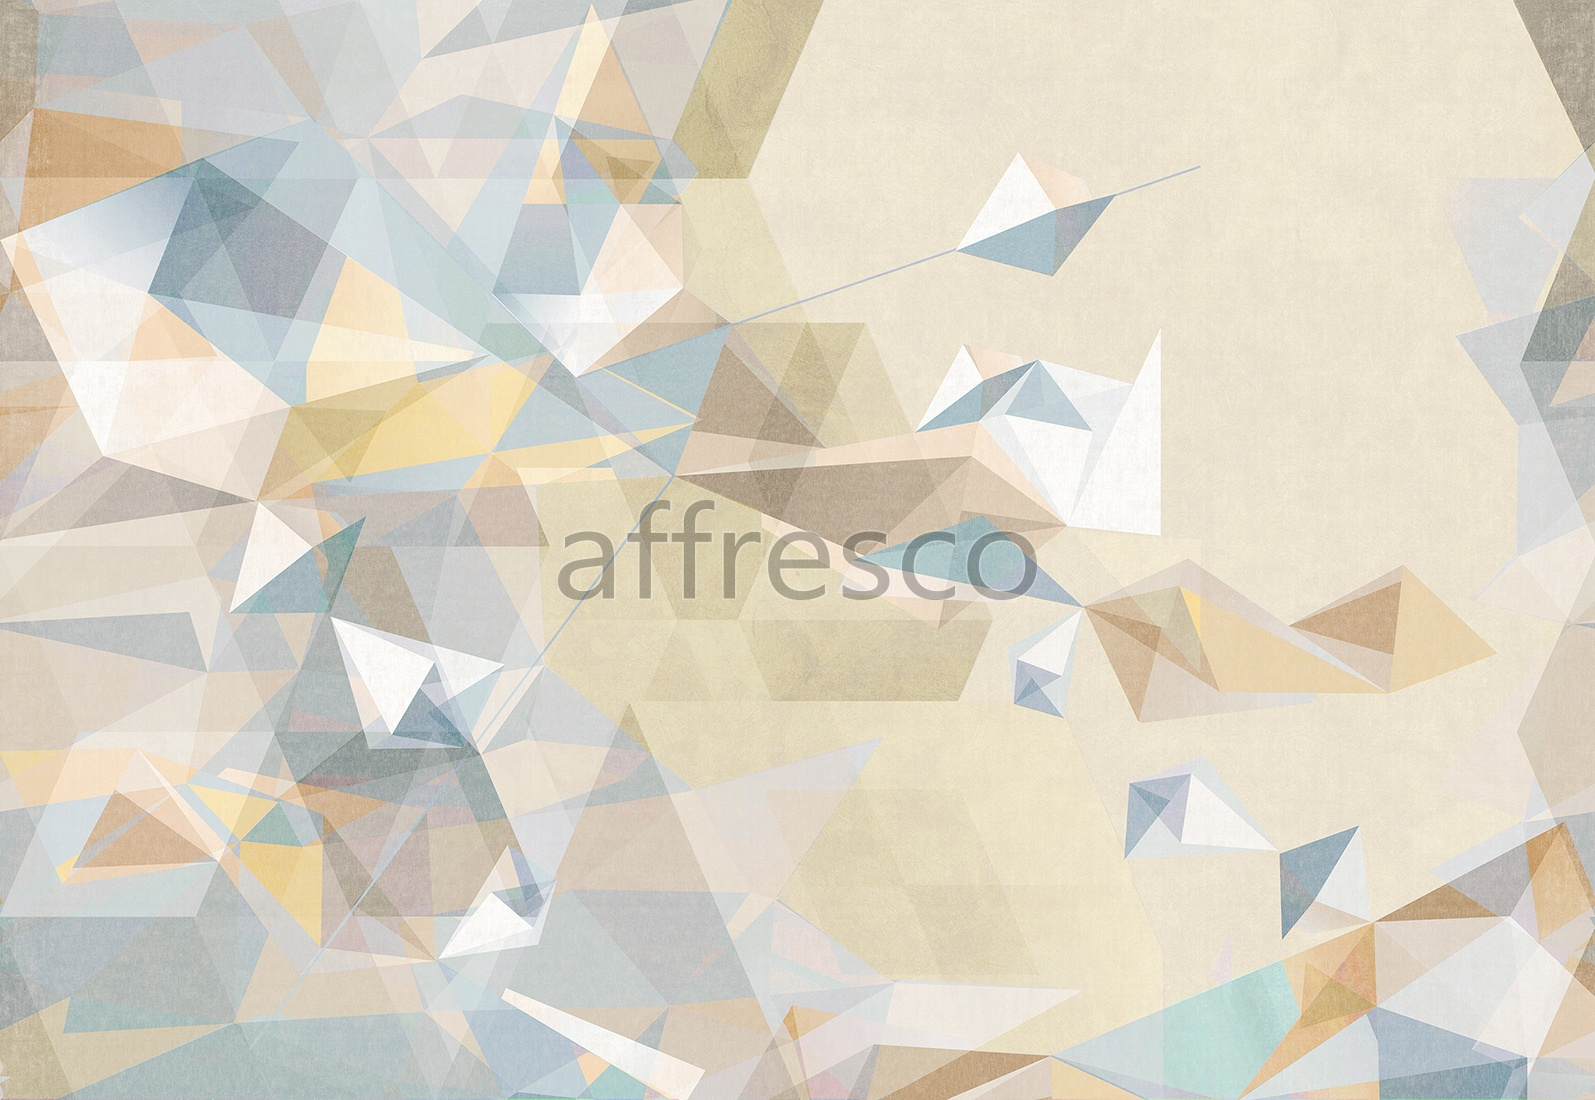 ID136335 | Geometry |  | Affresco Factory